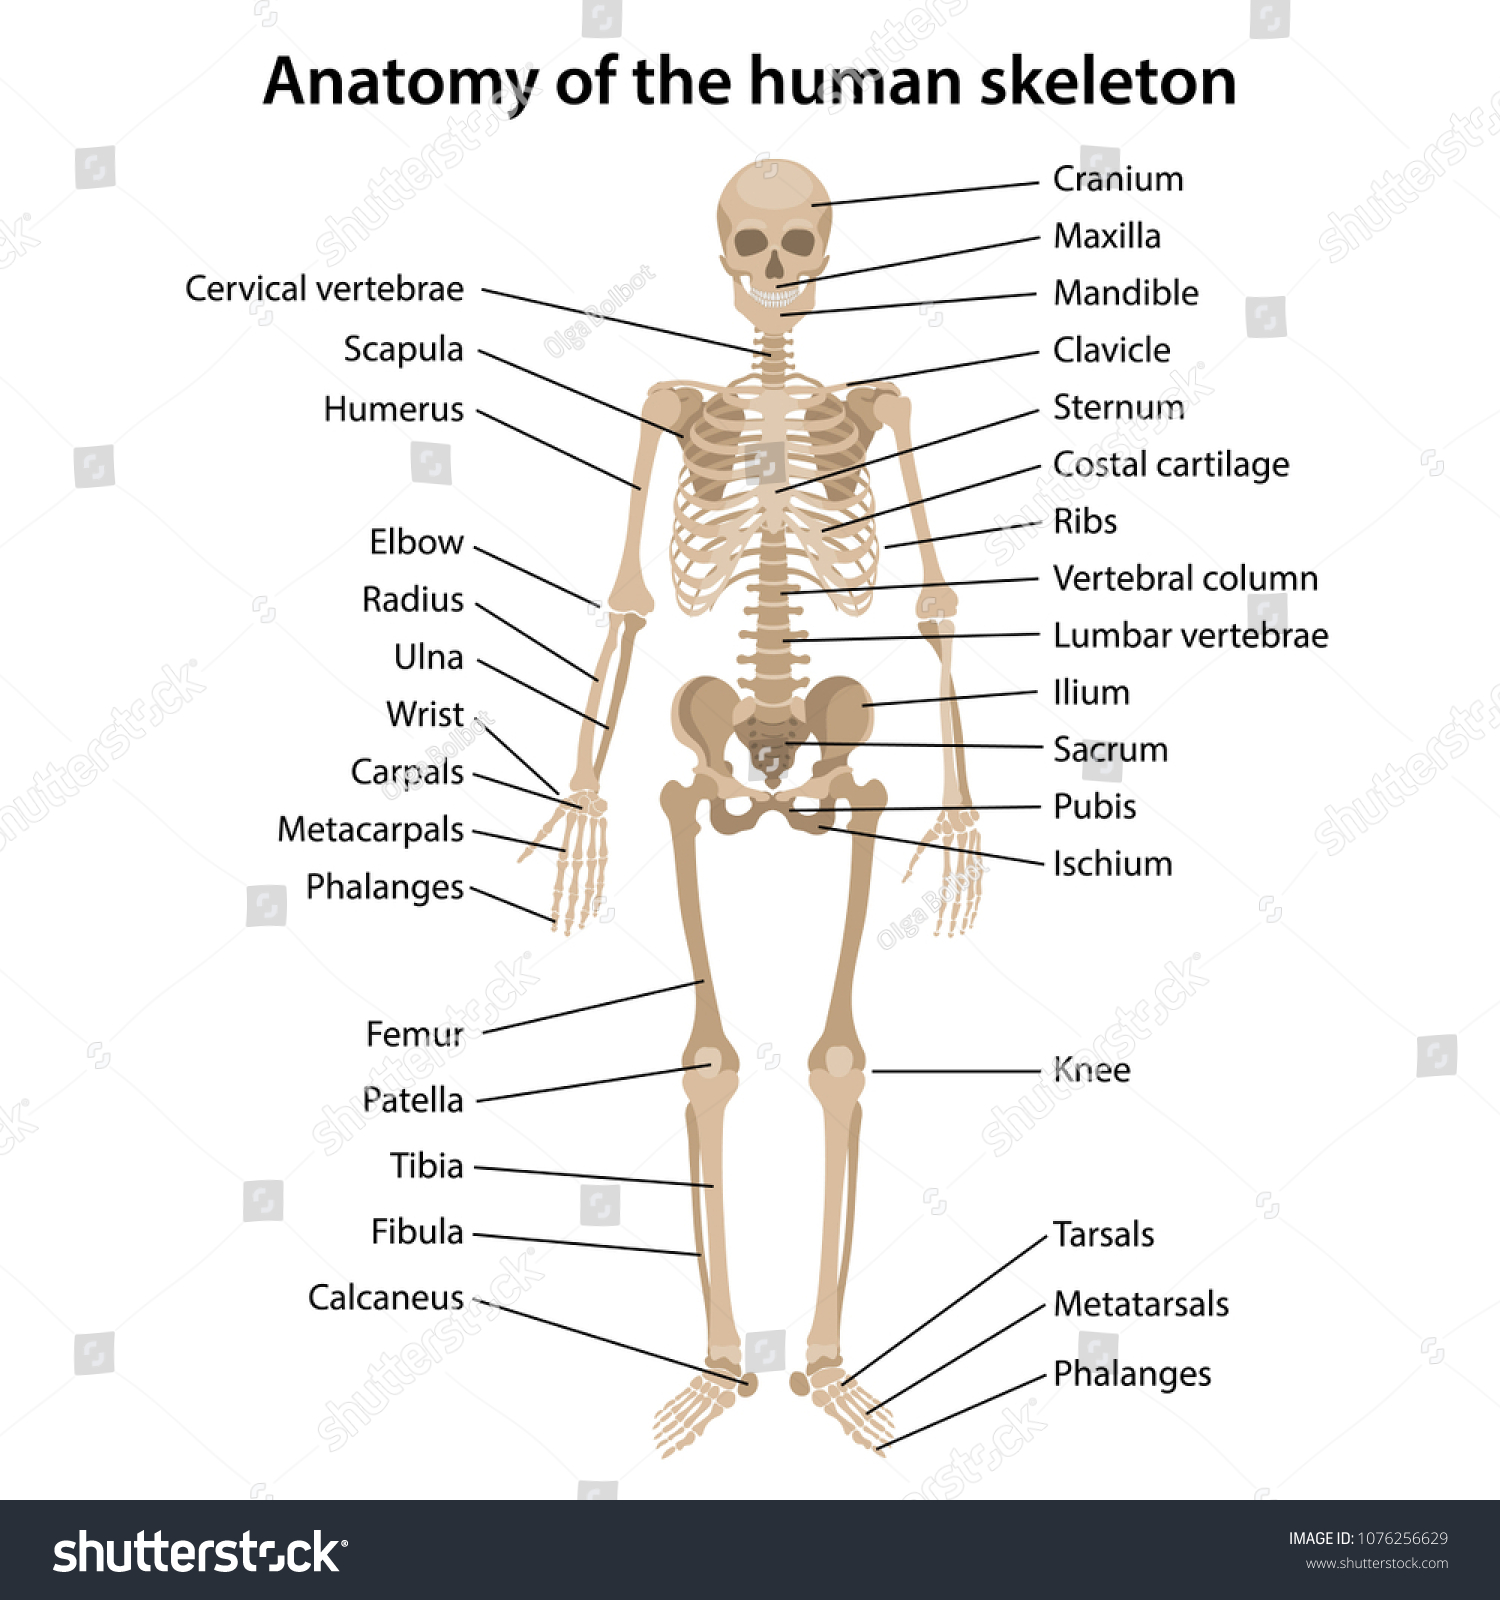 Human Skeleton Diagram Labeled